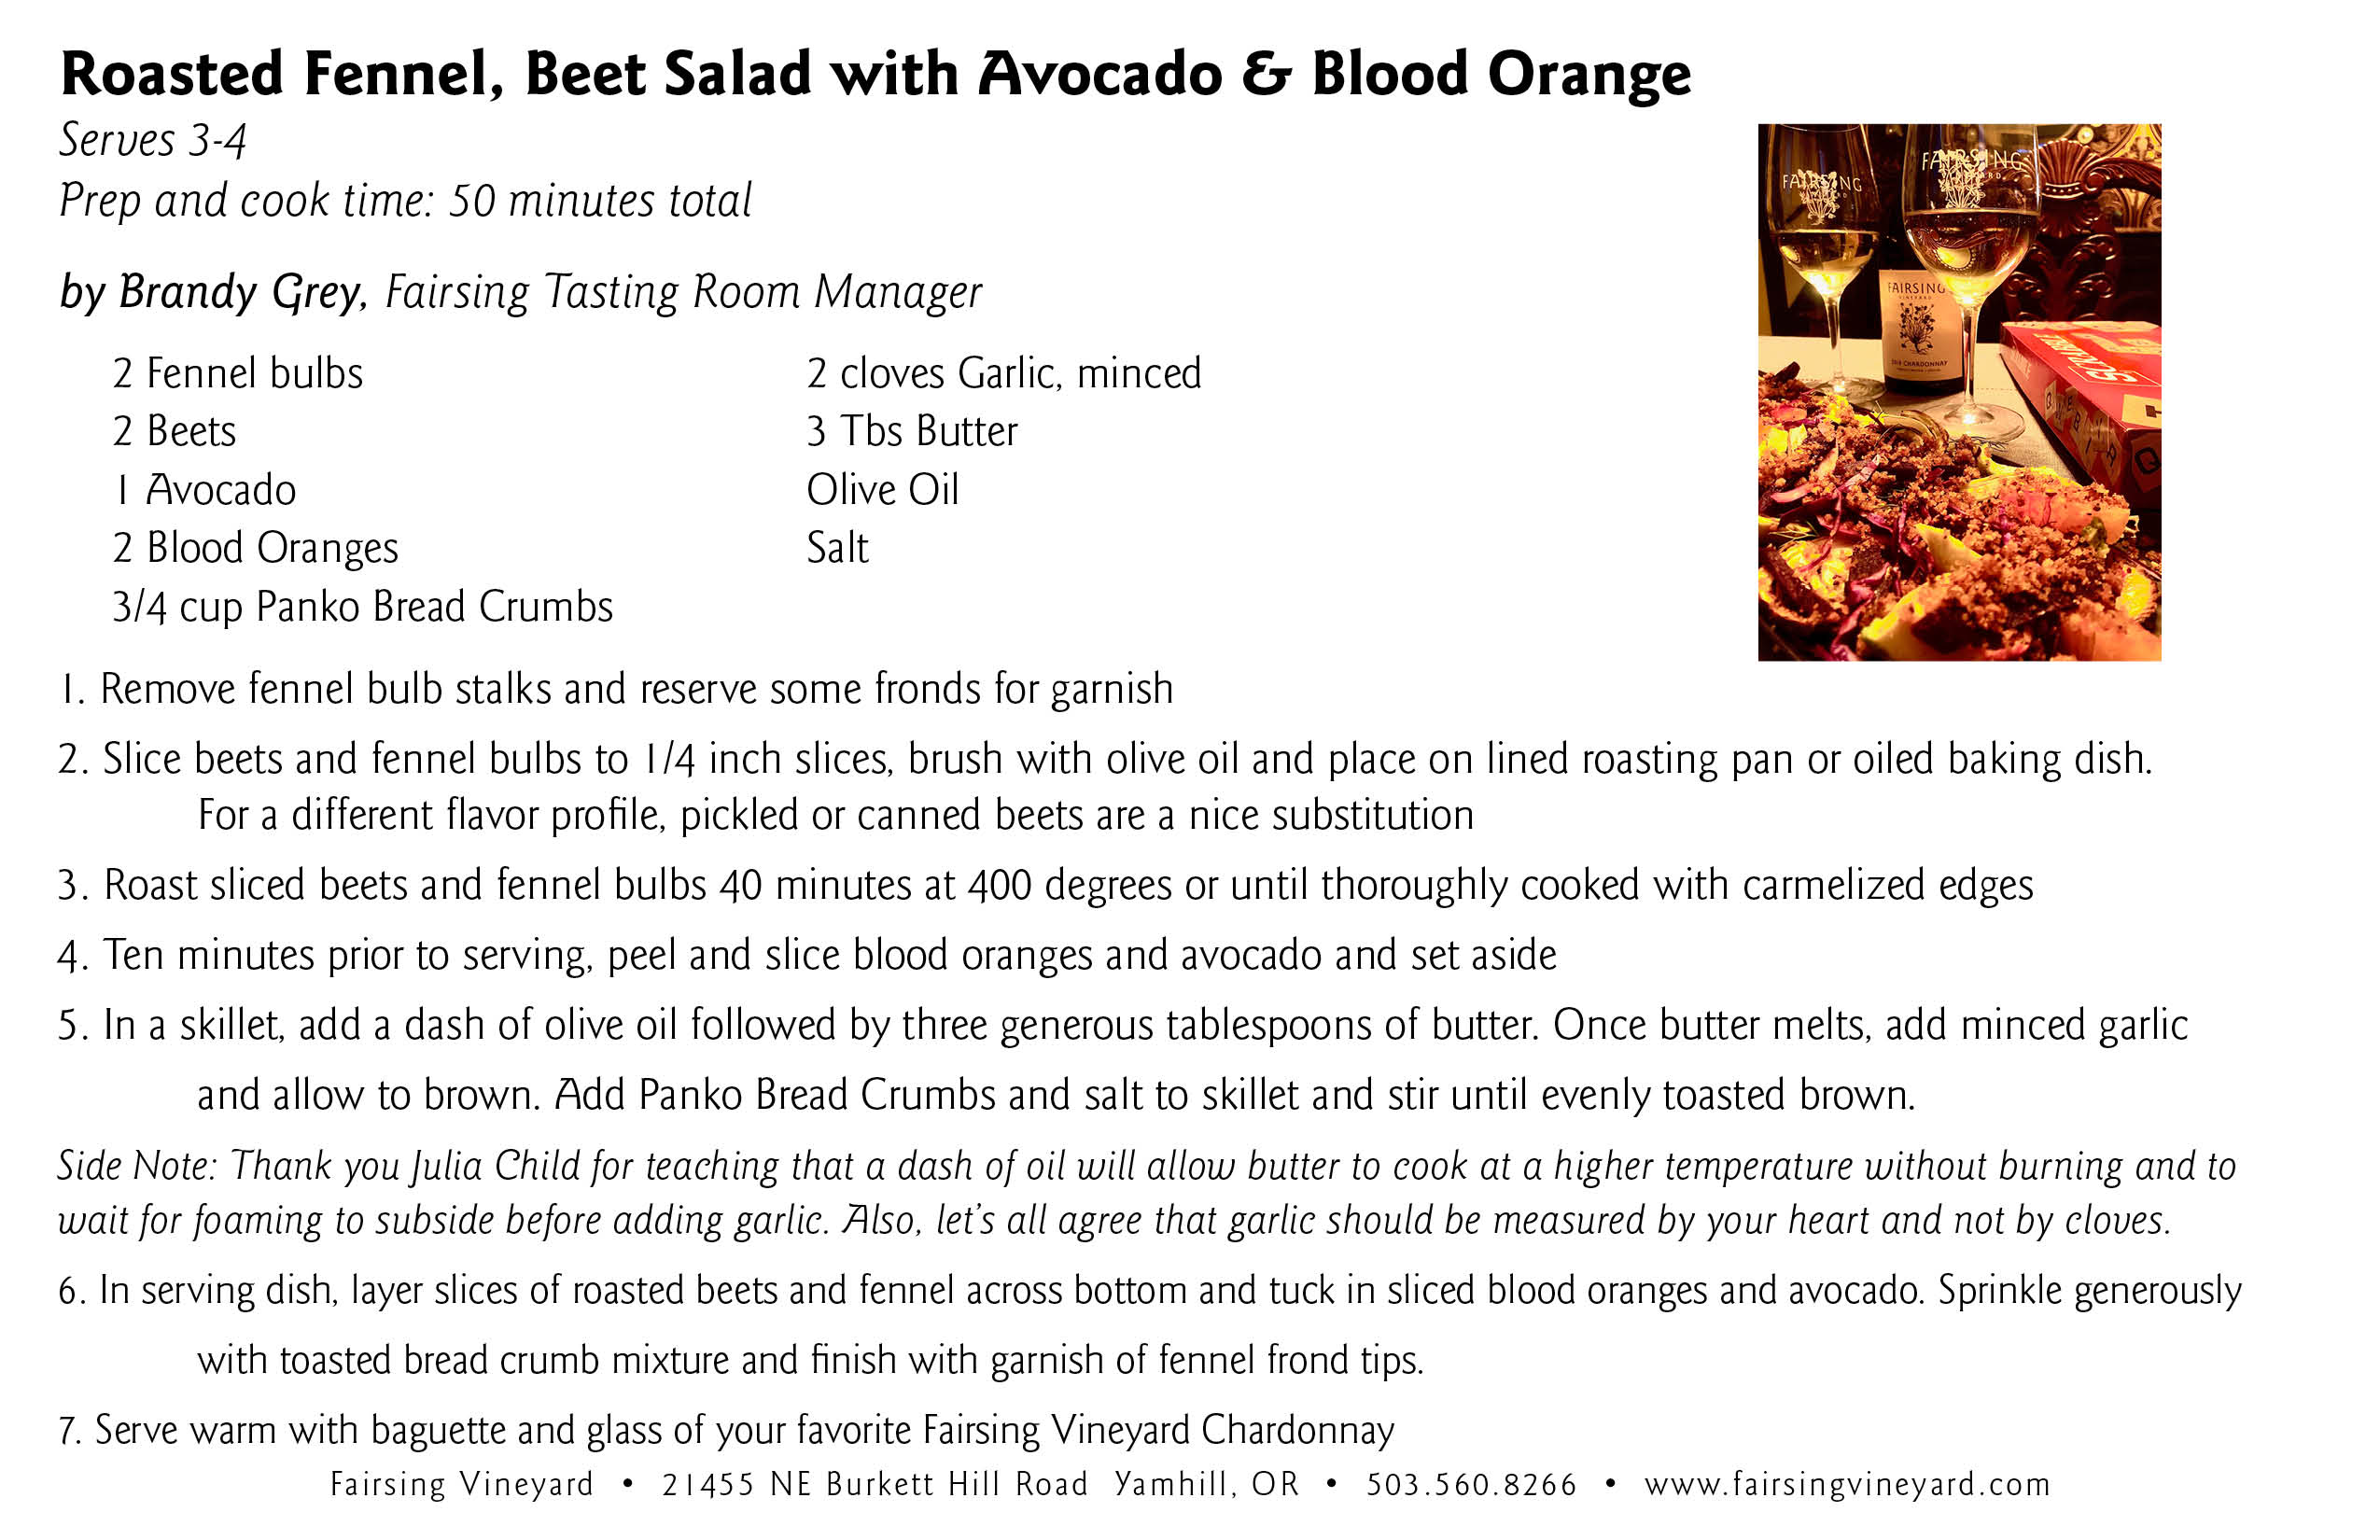 The Fairsing Vineyard Roasted Fennel Bulb and Beet Salad with Avocado and Blood Orange recipe